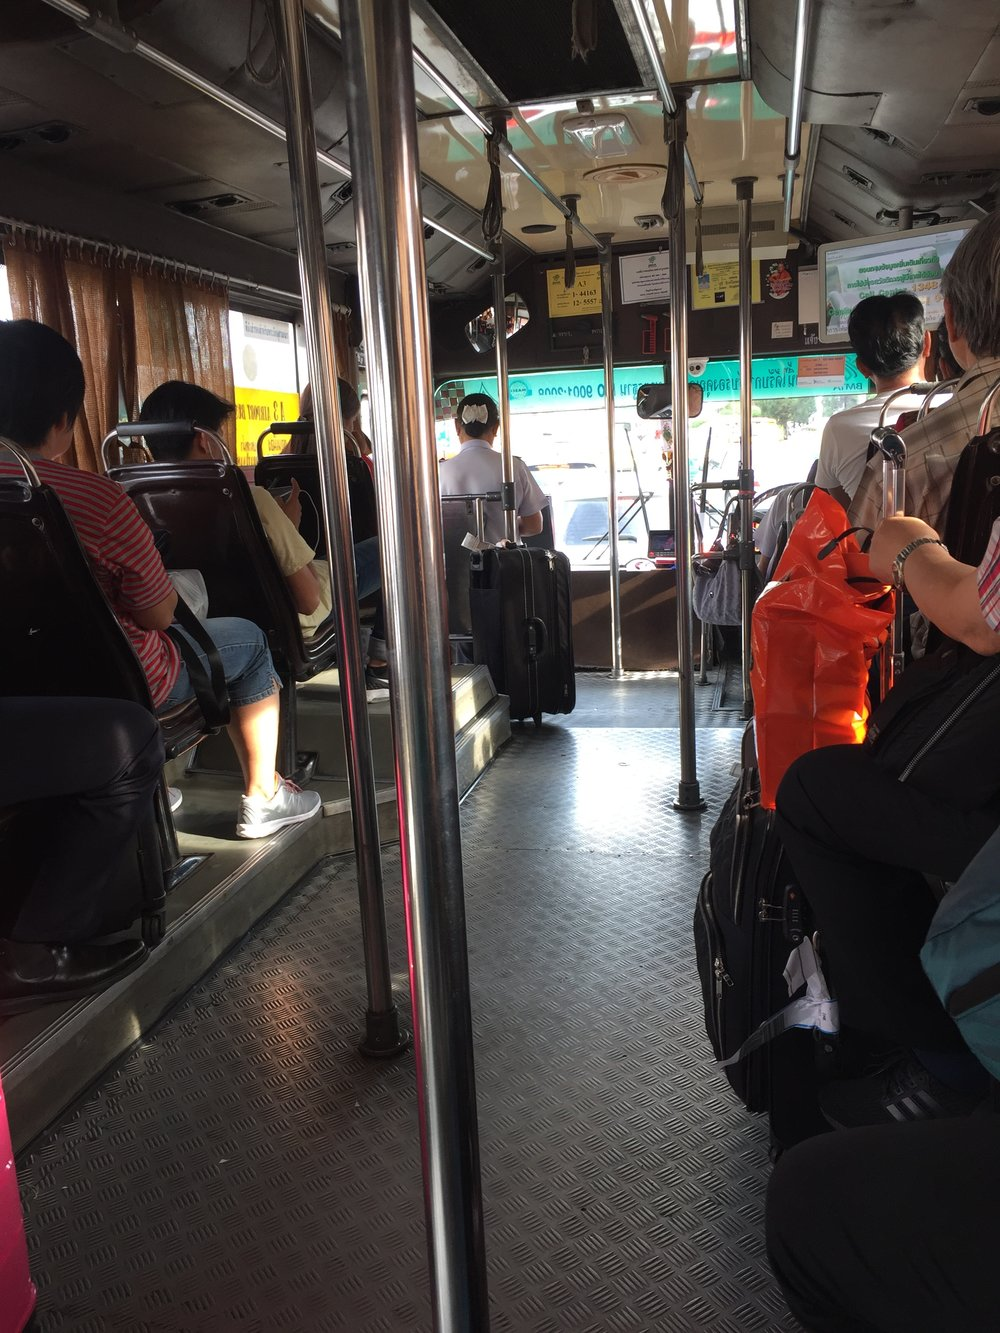 Bus from Don Mueang International Airport, Asia's oldest operating airport